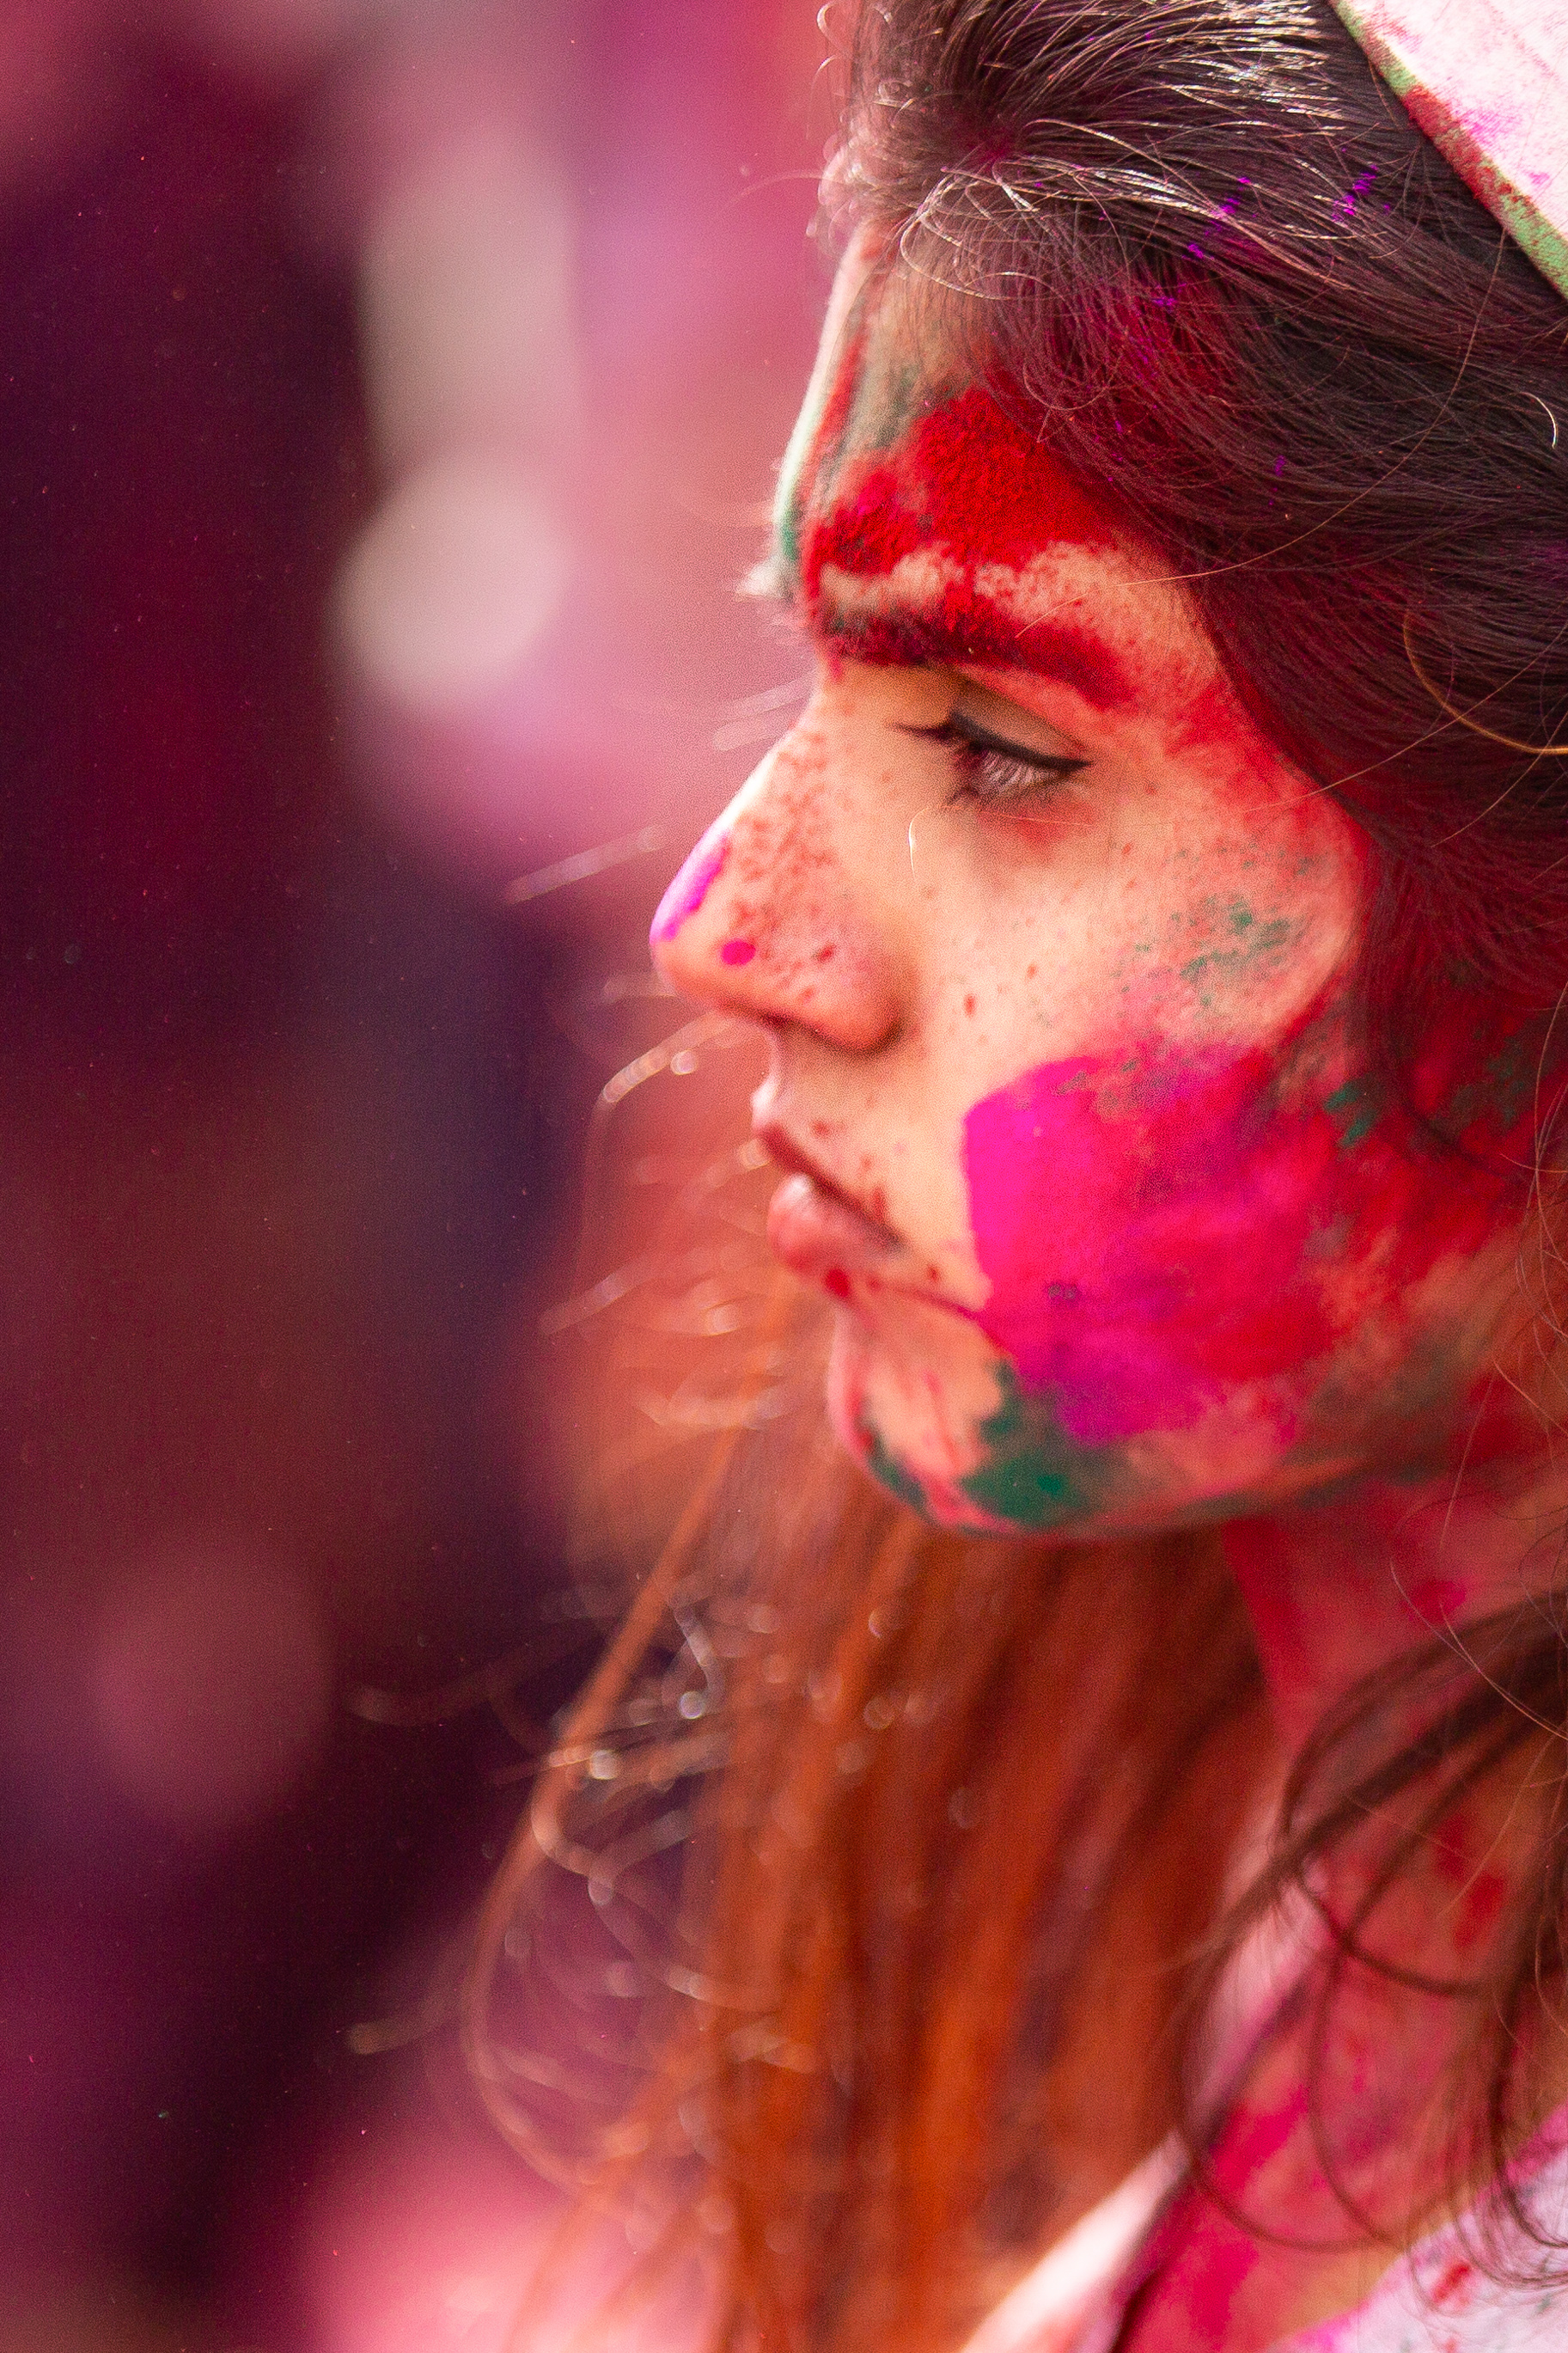 Holi is one of the most popular cultural celebrations on campus. This year, more than 3,000 people participated in the event.